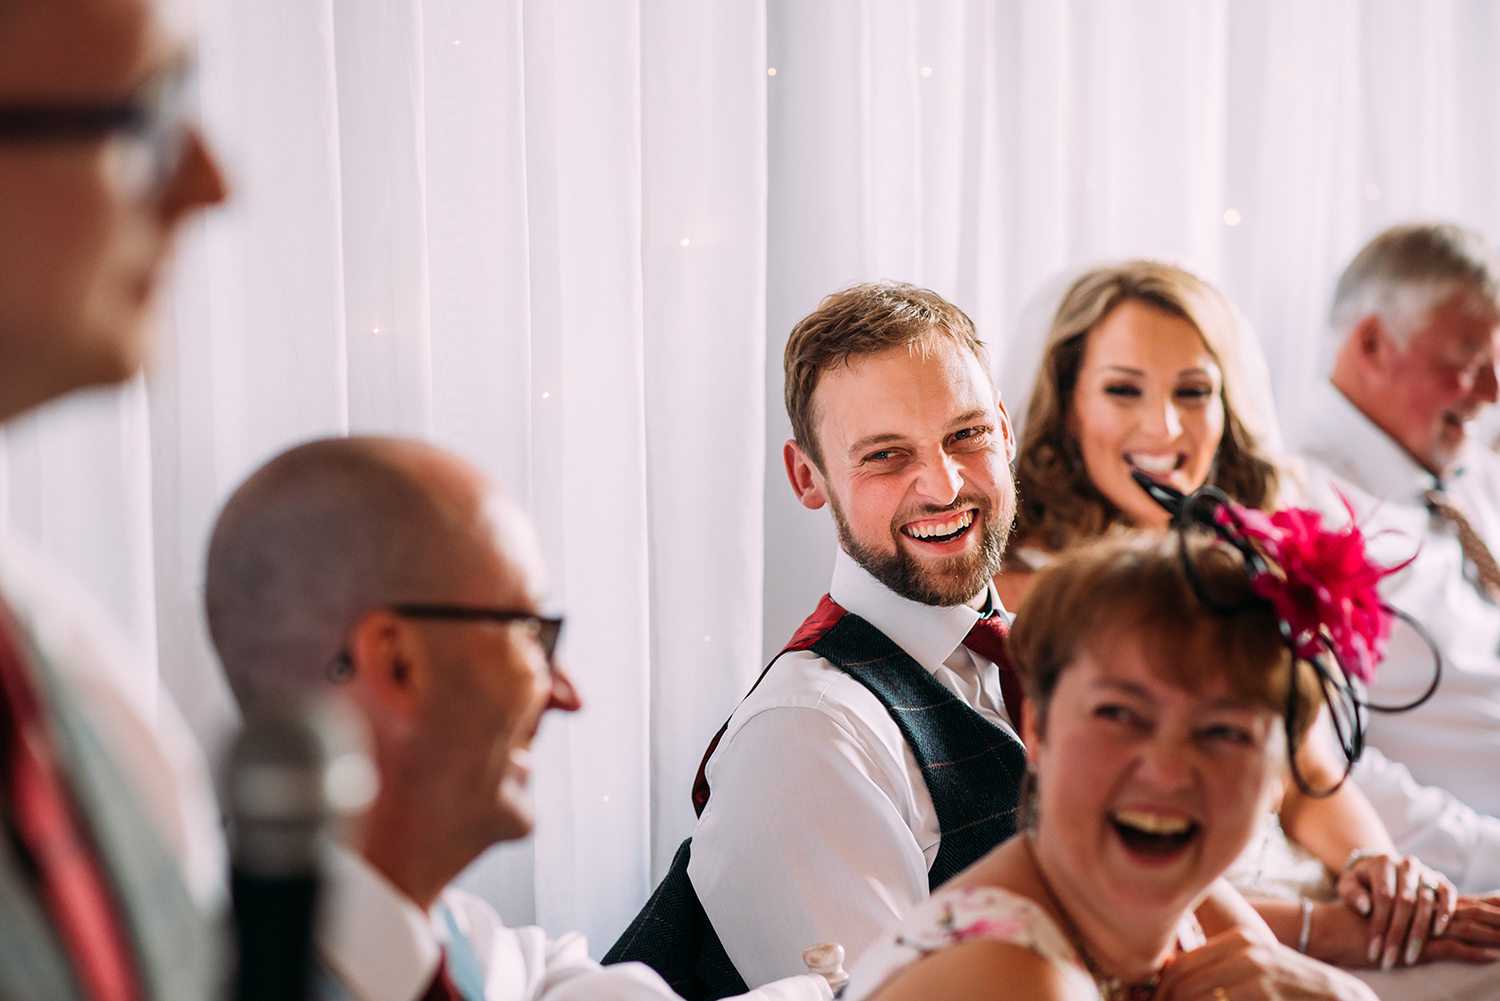 laughing during the speeches